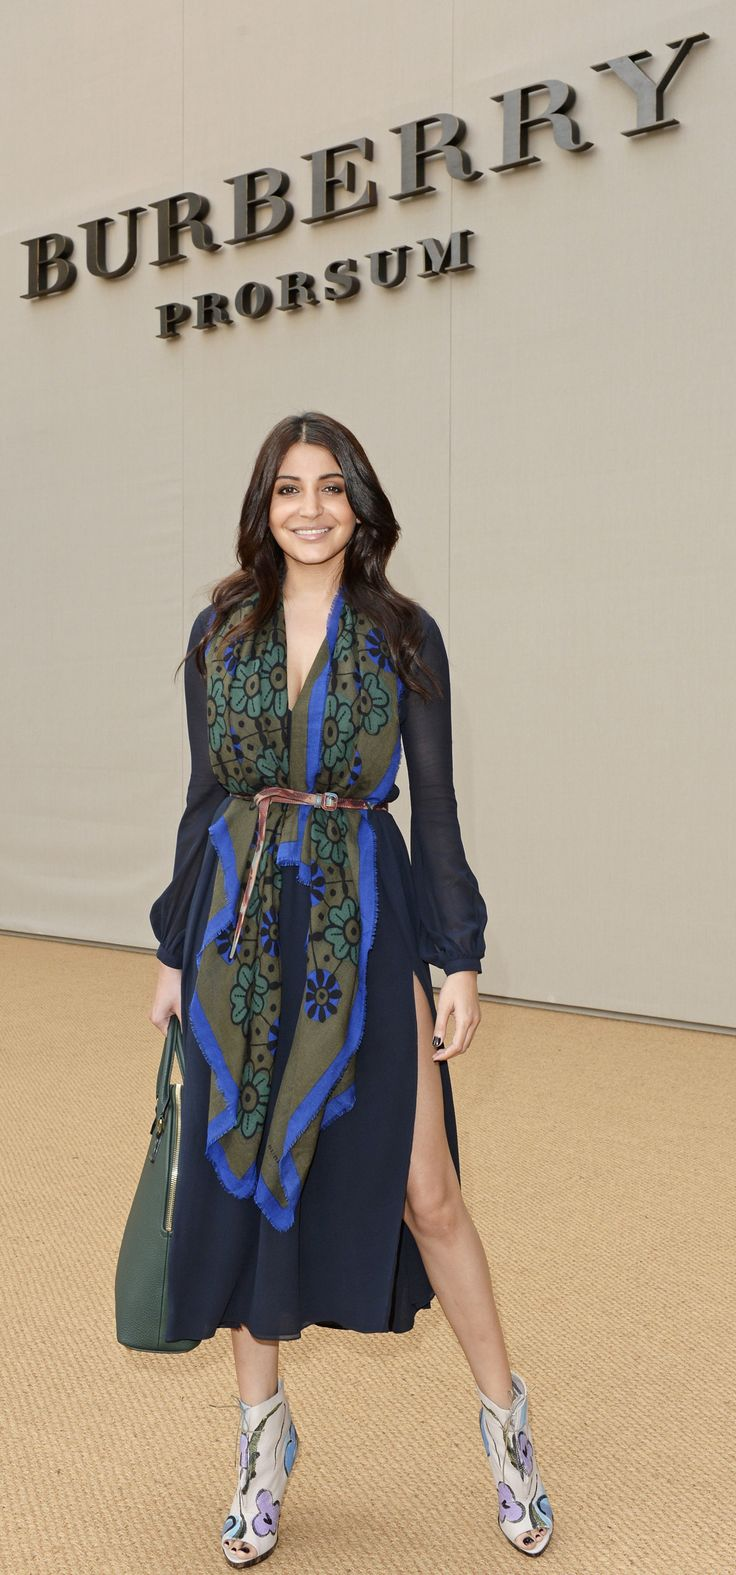 Anushka Sharma wearing a Burberry Prorsum Scarf and Bloomsbury Bag at the S/S15 Runway Show in London